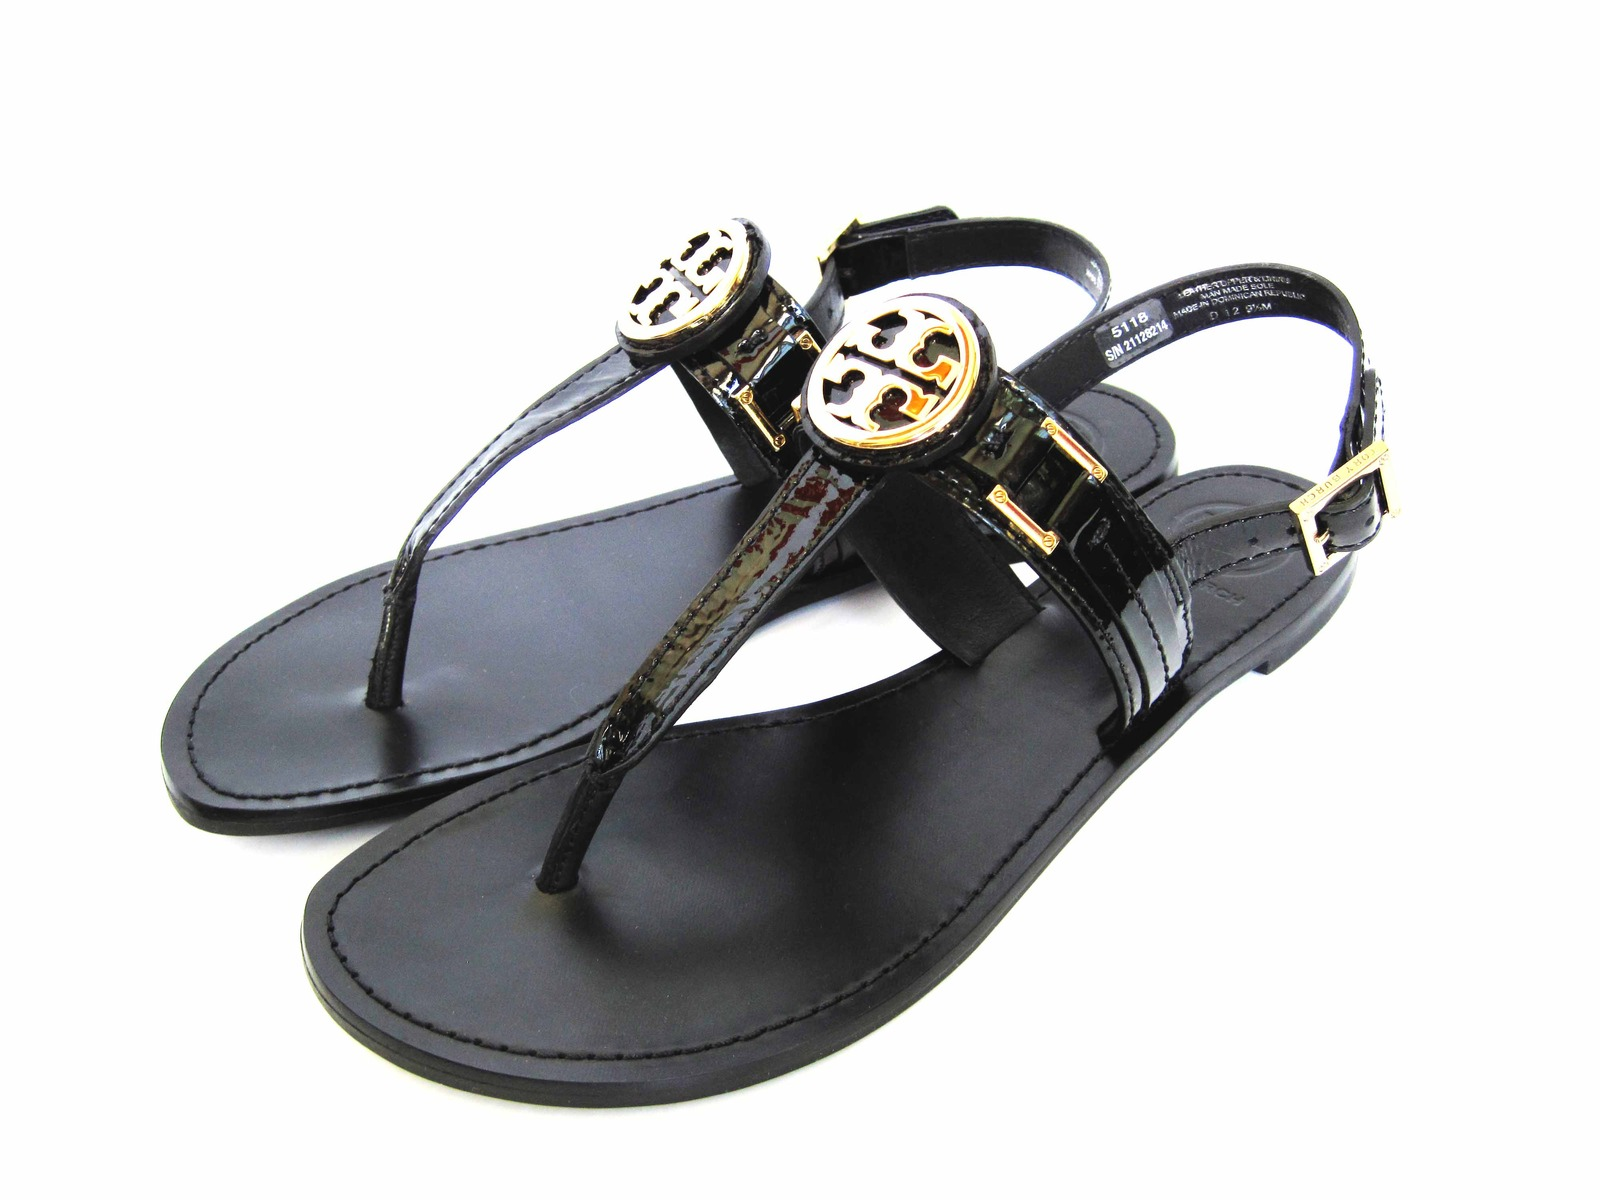 Tory Burch Flip Flops Amazon